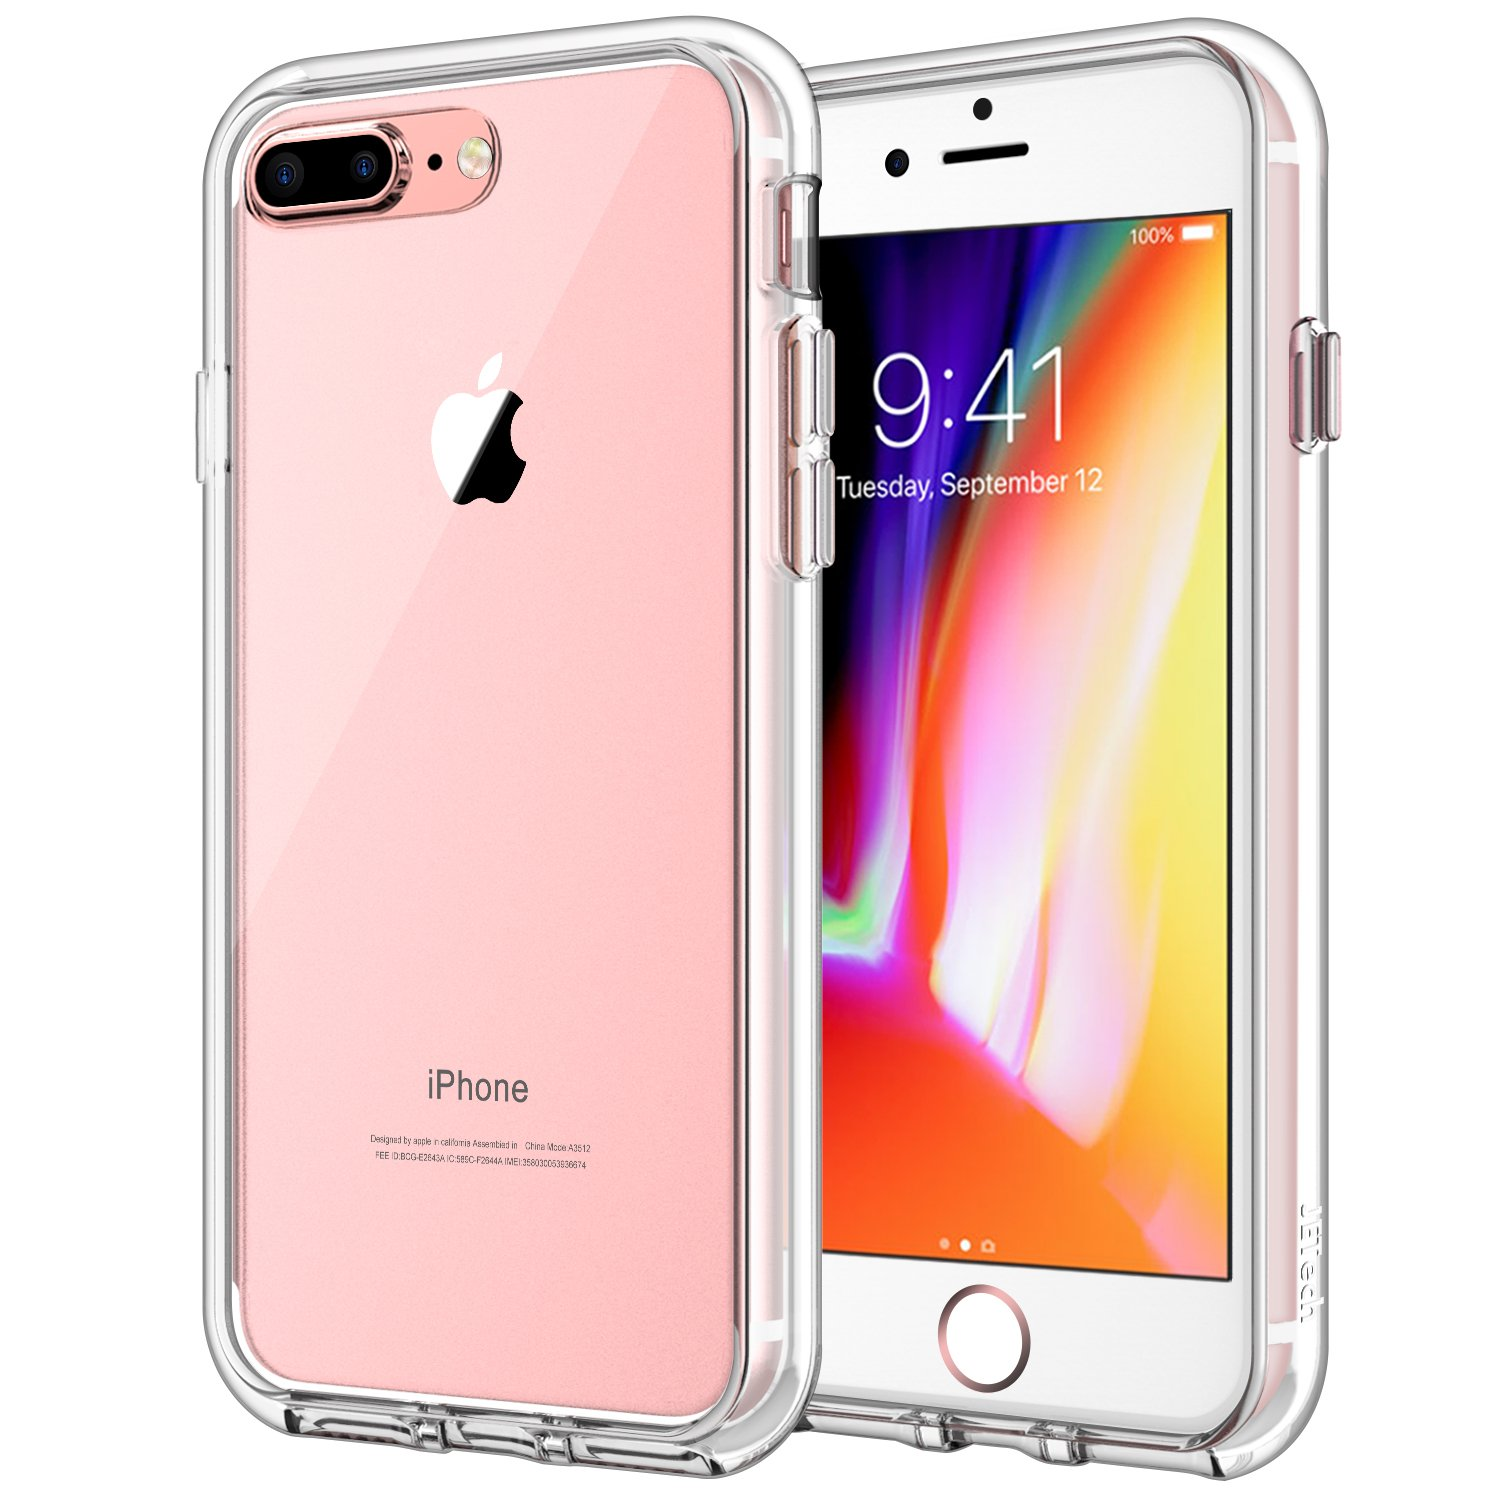 iphone 7 plus cases amazon co ukjetech 3431a case for apple iphone 8 plus and iphone 7 plus, shock